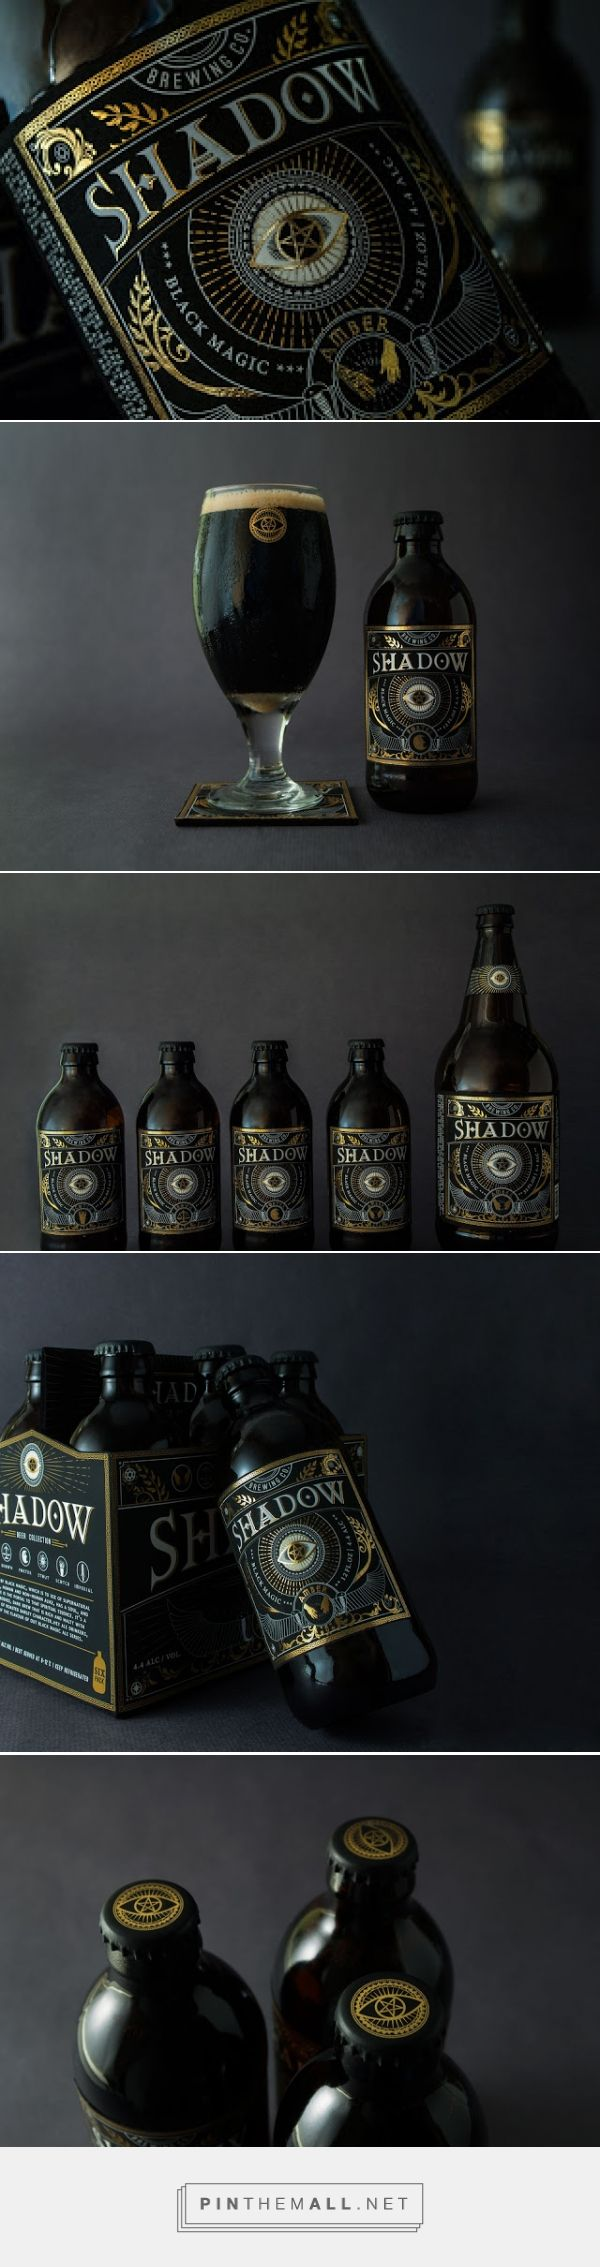 """Shadow is inspired by """"black magic"""", which symbolizes the supernatural powers that cannot be seen with naked eyes. The eye logo is the portal to that spiritual essence. In the six pack of Shadow, each bottle has a different taste indicating a """"different personality"""", and they are represented on the labels as witches hands, scale, sword, moon, sun and fire. The overall style is dark and mysterious."""